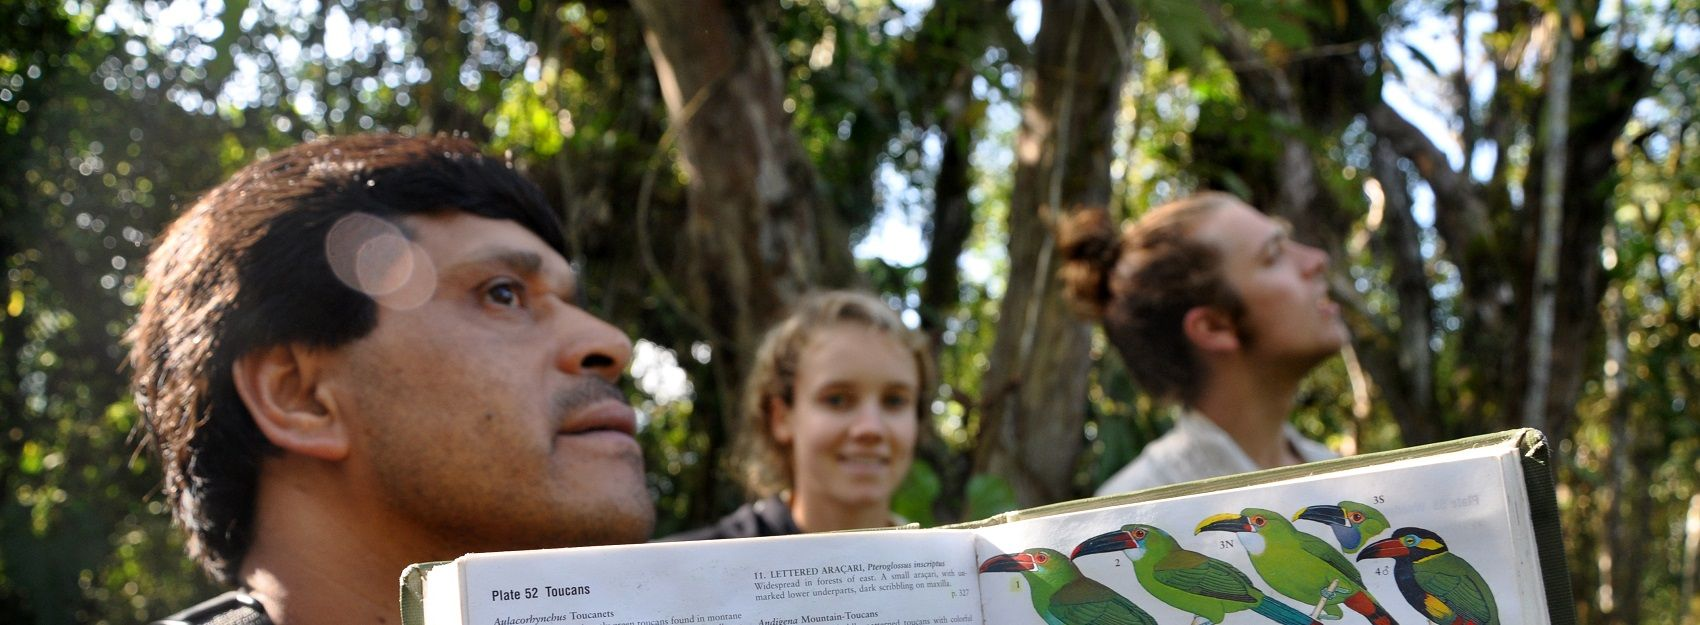 professor holding book of birds for class excursion in rainforest